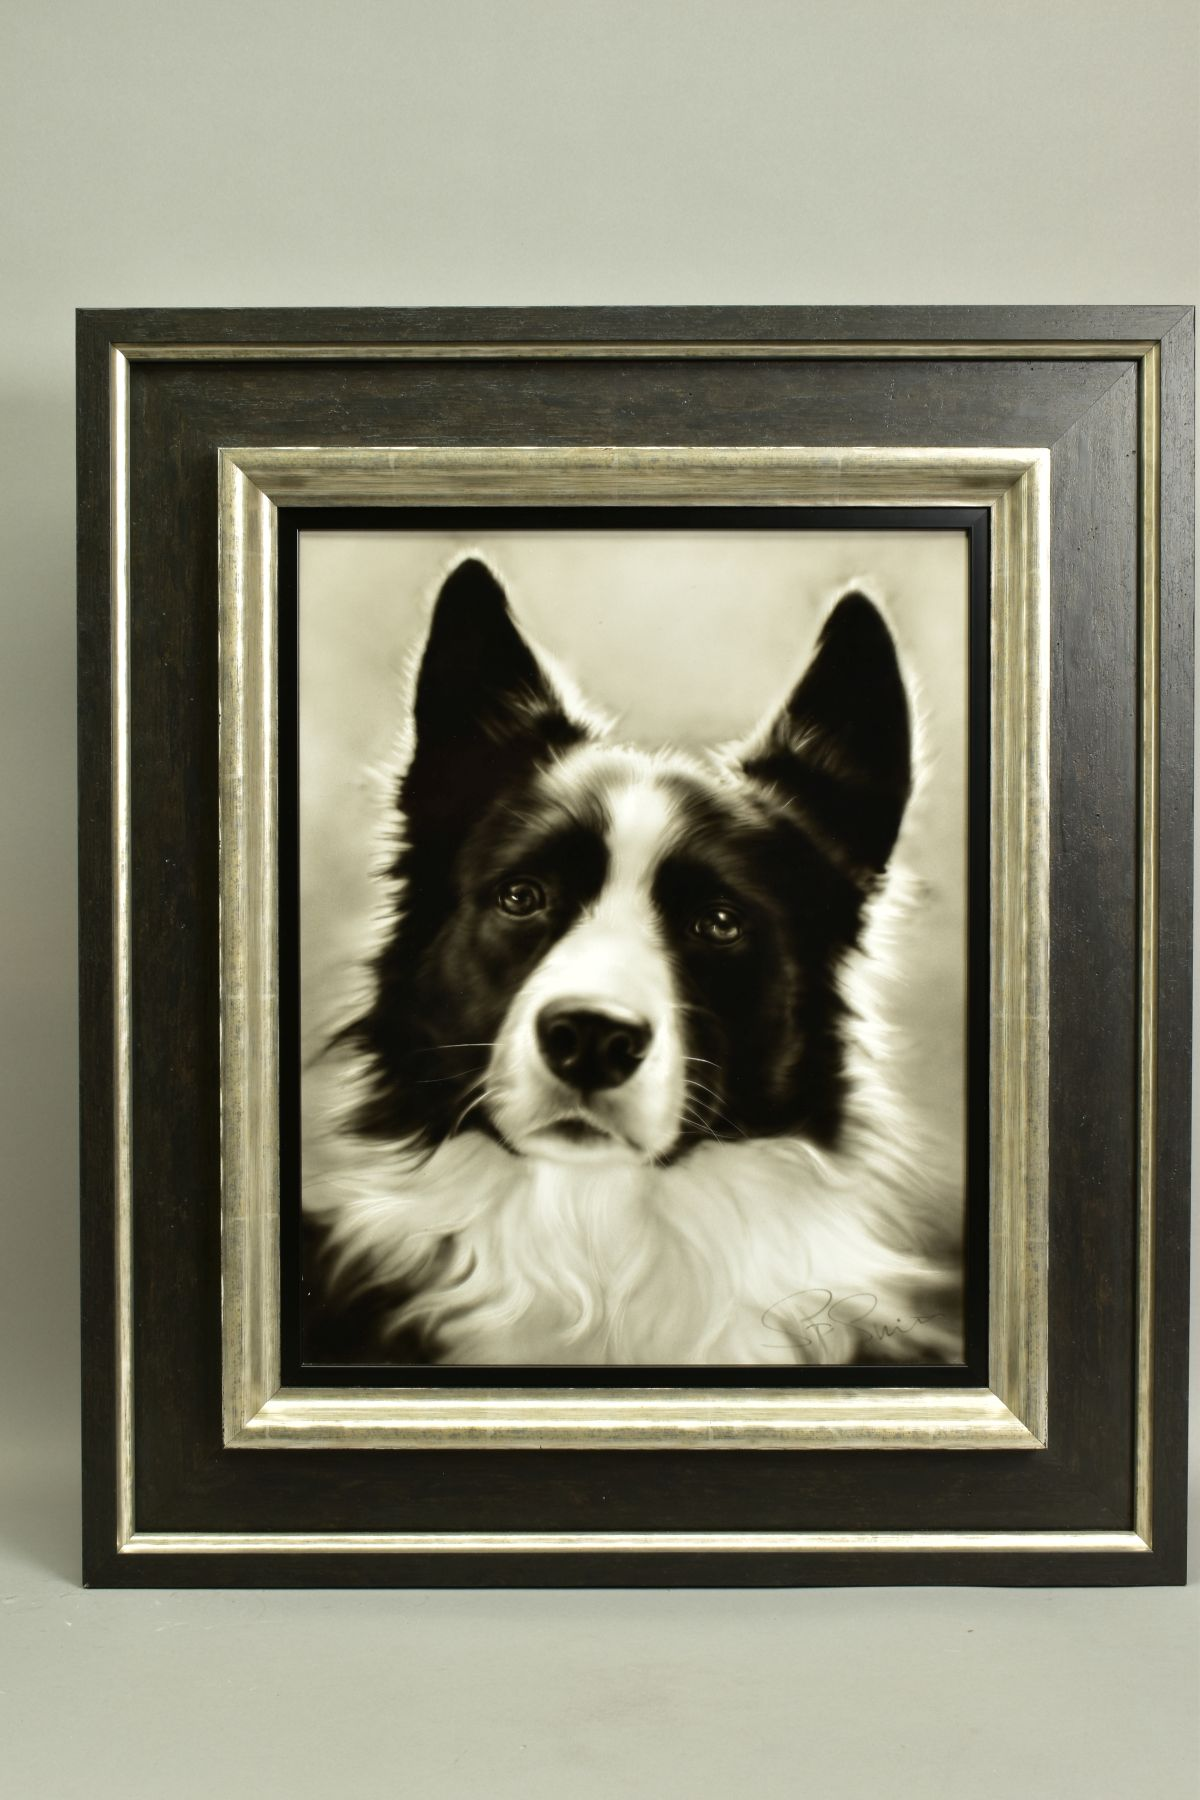 STEVEN SMITH (BRITISH 1974), 'Collie', a portrait of a Collie Dog, signed bottom right, air brush on